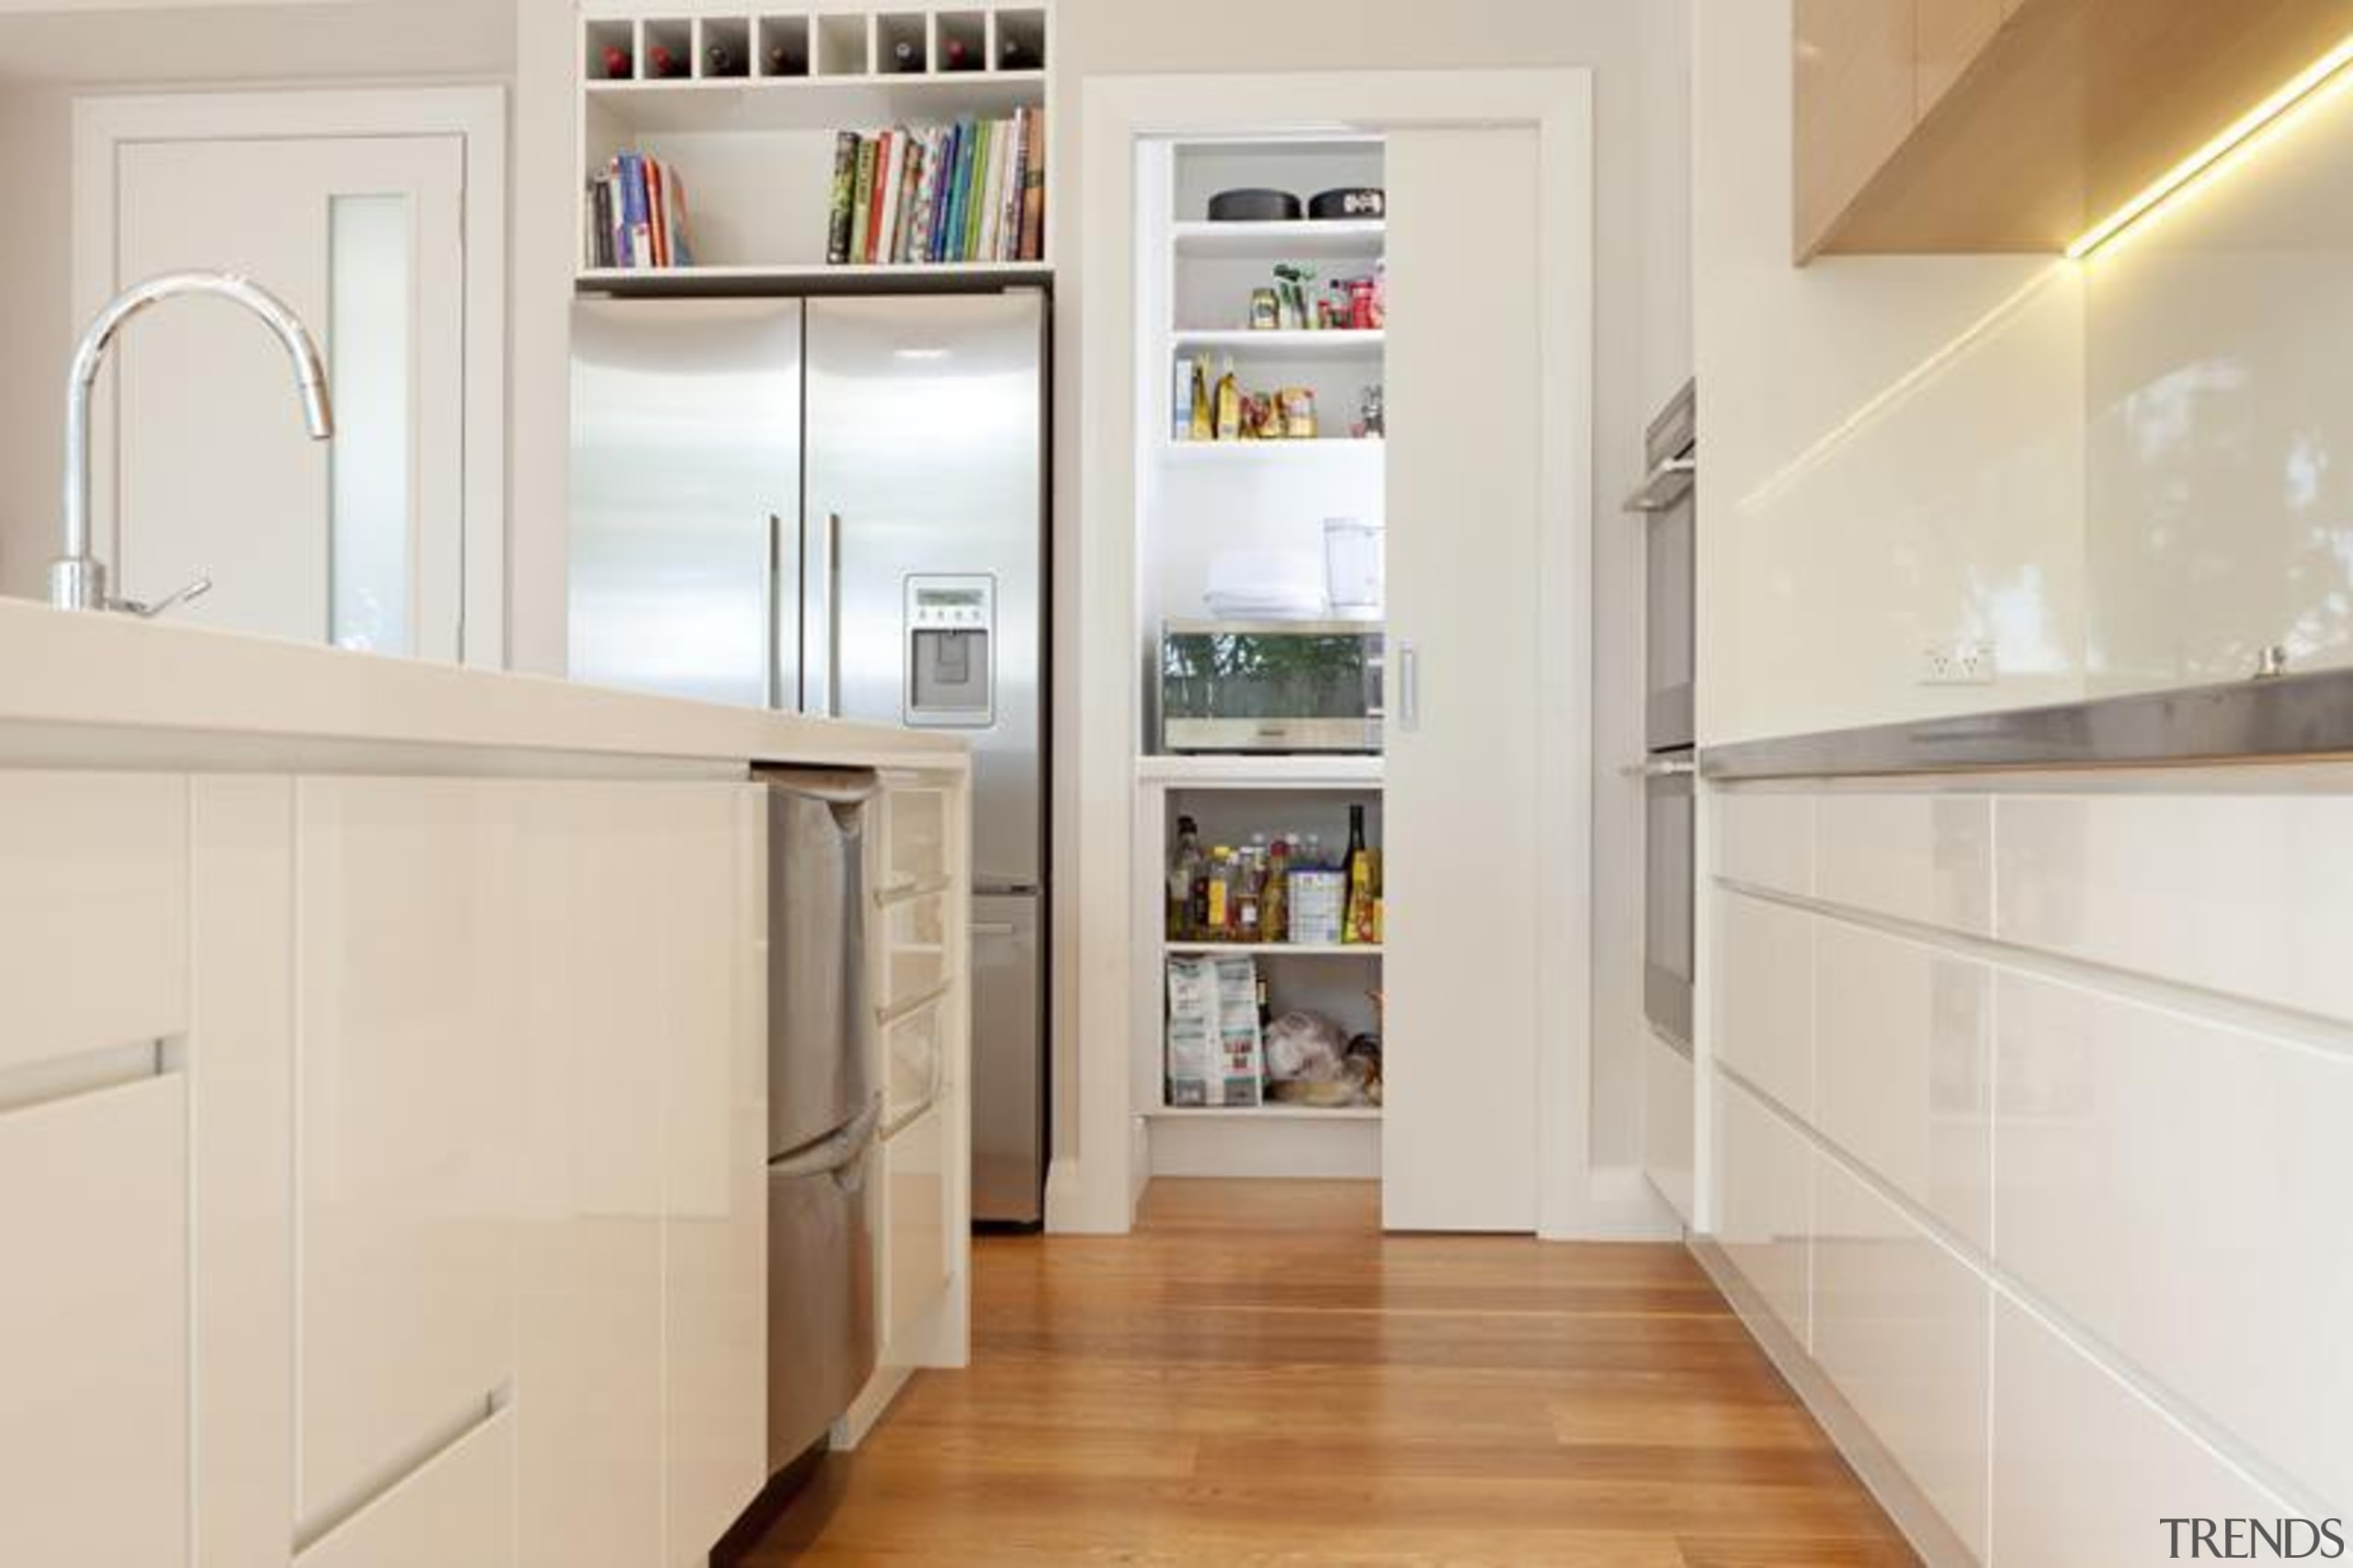 handless less cabinetry, walk in pantry, led lighting cabinetry, countertop, cuisine classique, floor, flooring, hardwood, home appliance, interior design, kitchen, room, gray